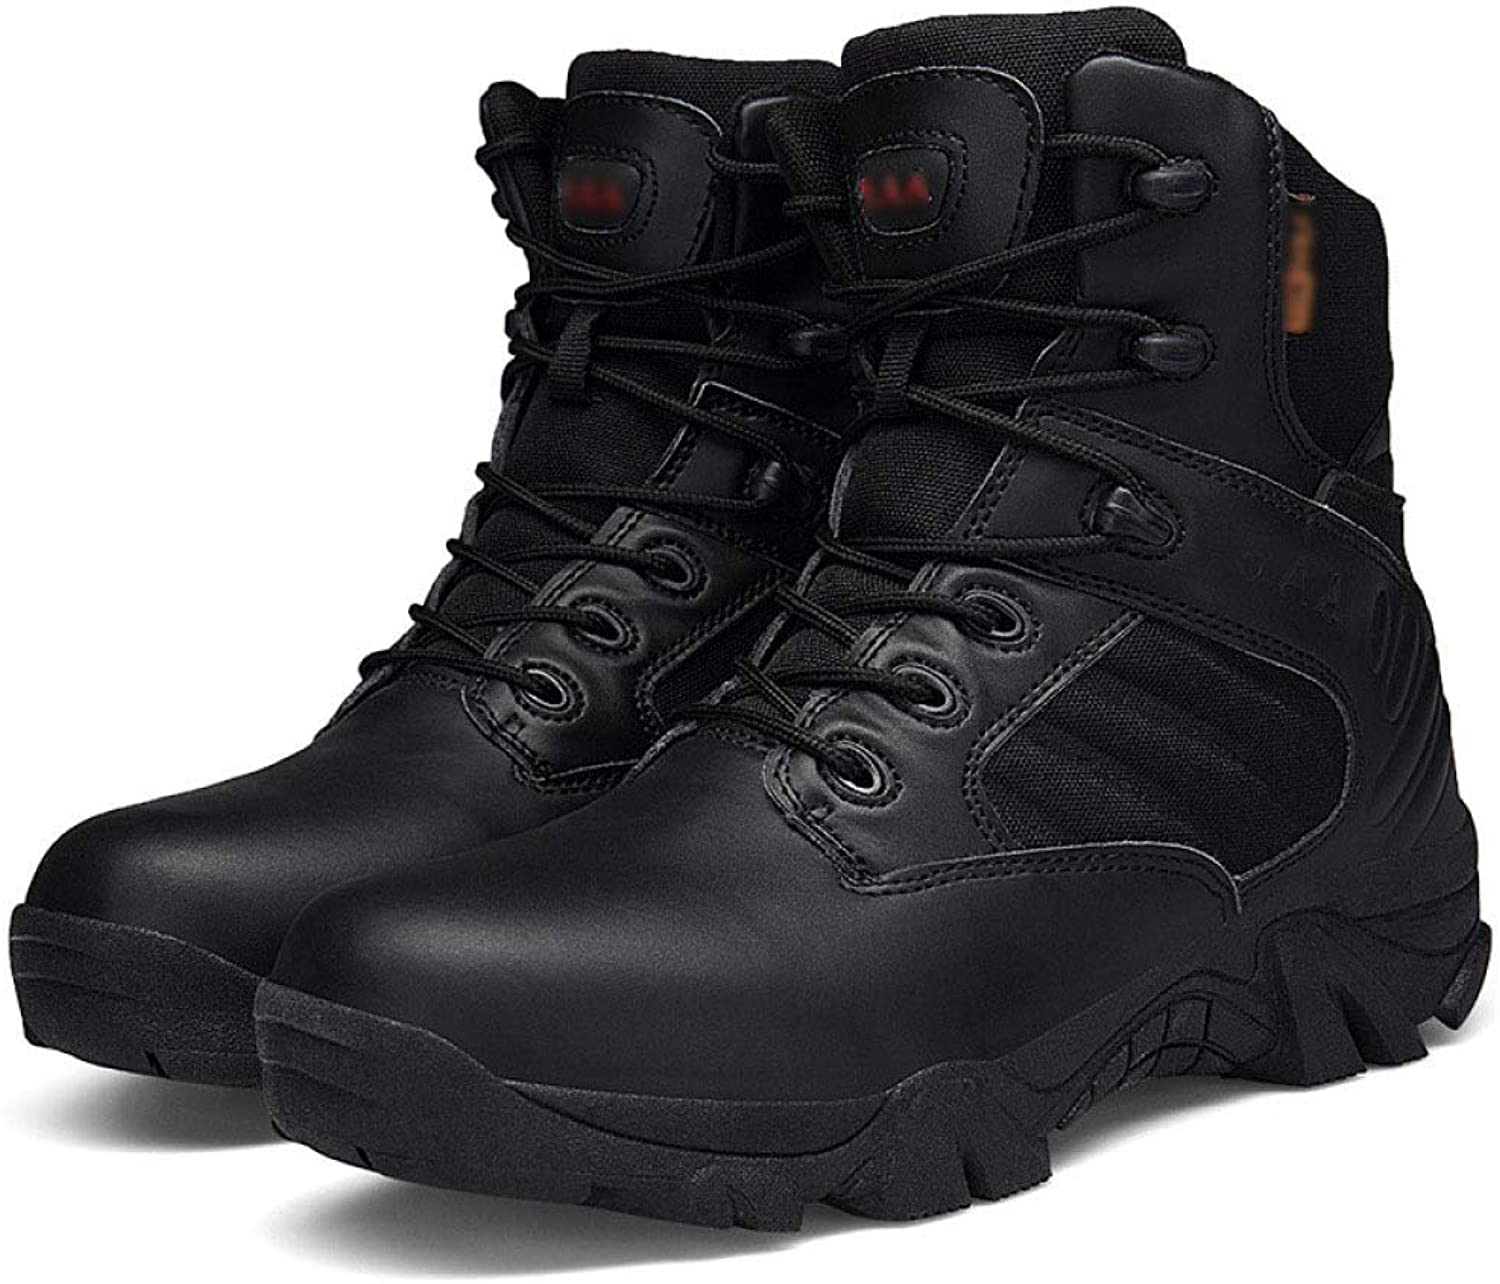 QIKAI Tactical Boots Zip Fashion Leather Velvet Comfortable Non-Slip Wear-Resistant Shock-Absorbing Combat Hiking Boots